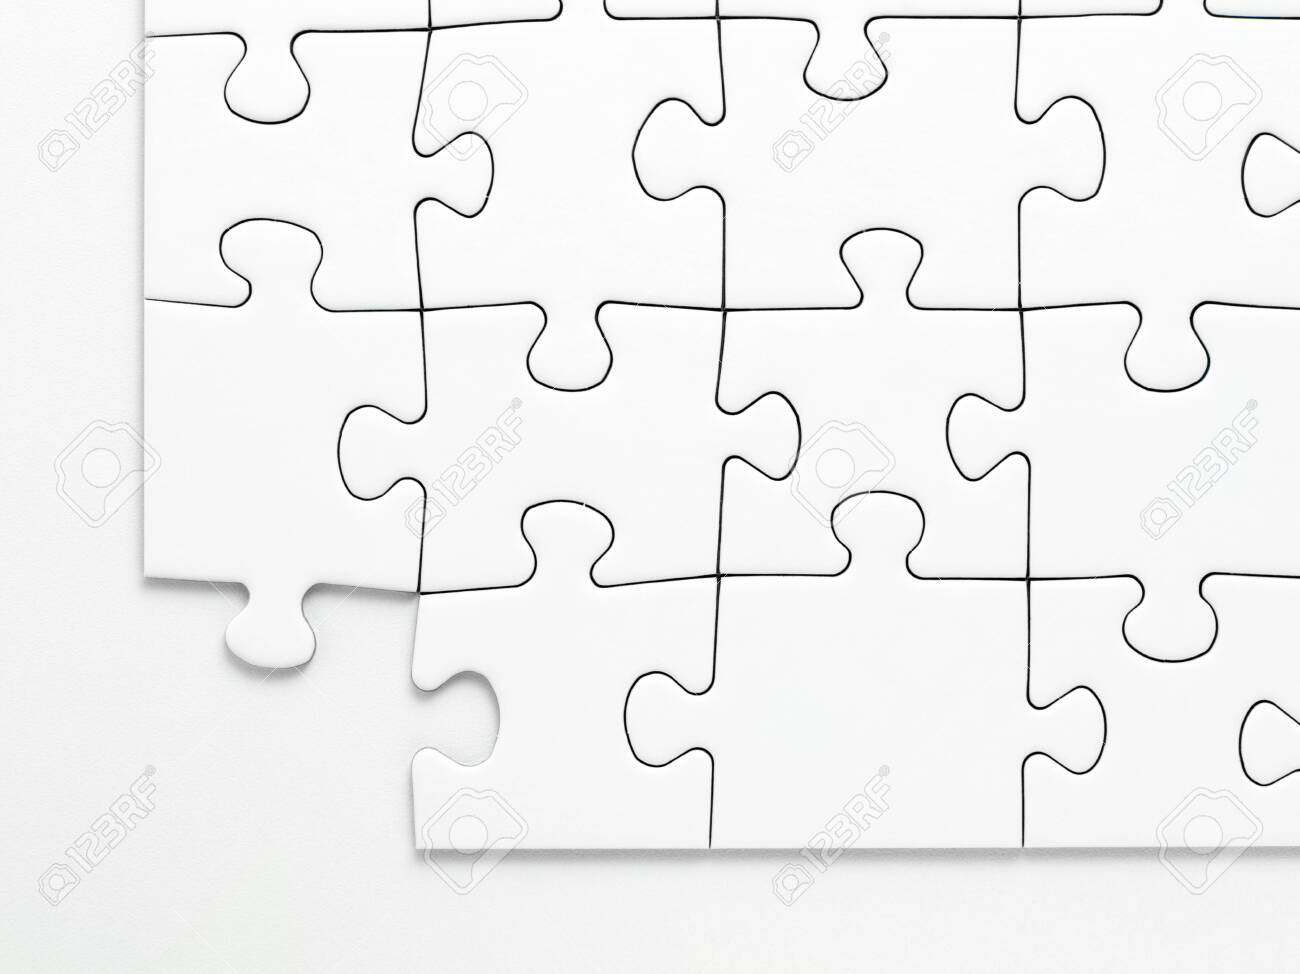 A missing piece from a jigsaw - 128764621